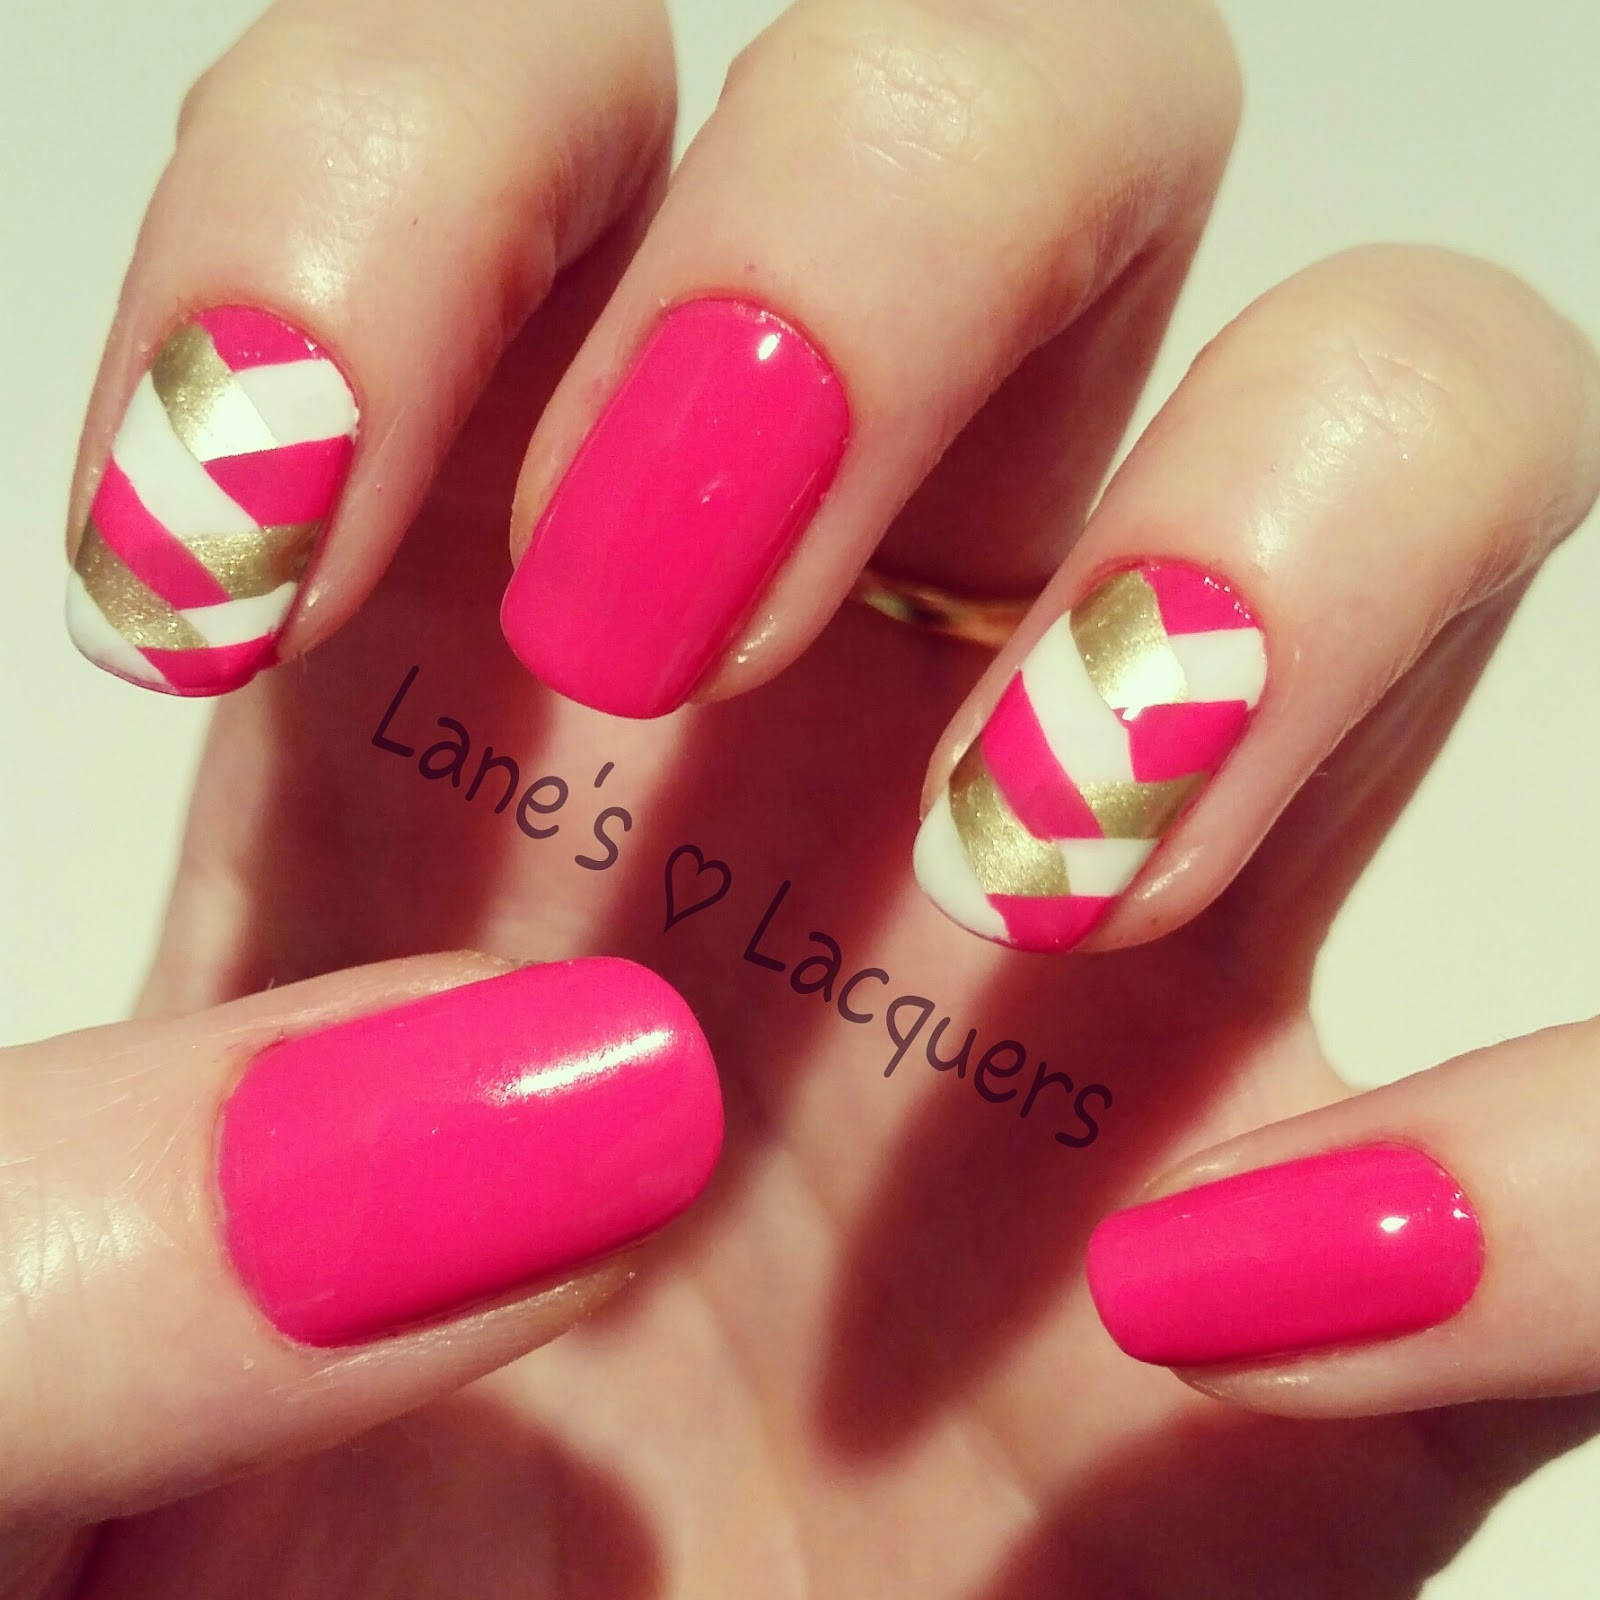 barry-m-pink-white-gold-fishtail-braid-nail-art